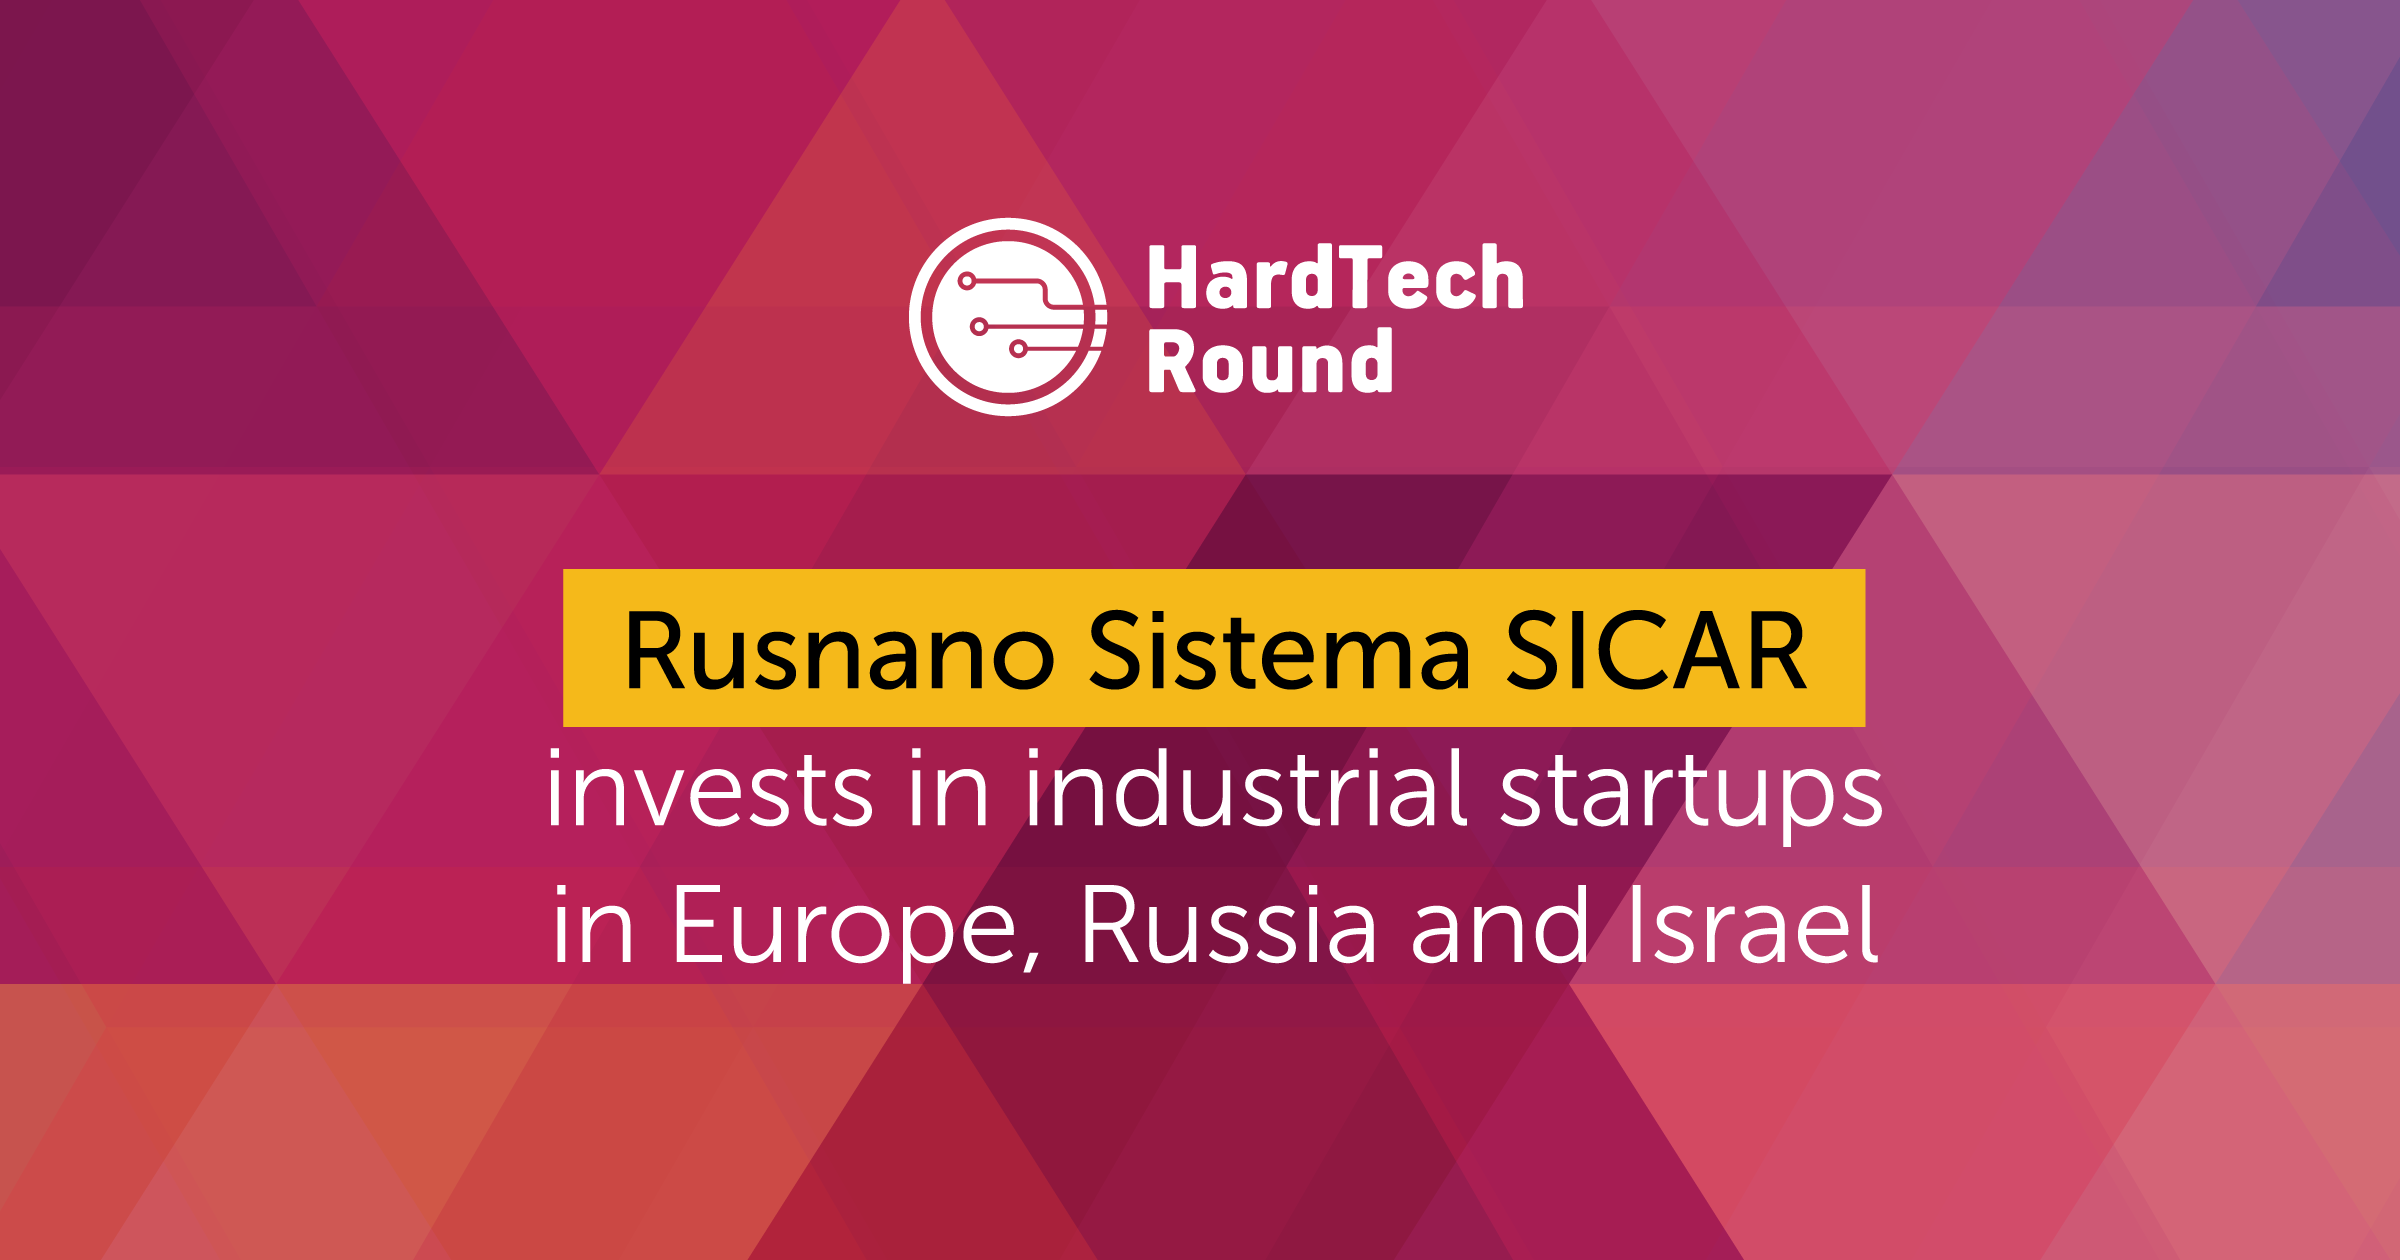 Rusnano Sistema SICAR invests in industrial hi-tech businesses in Europe, Russia, CIS and Israel